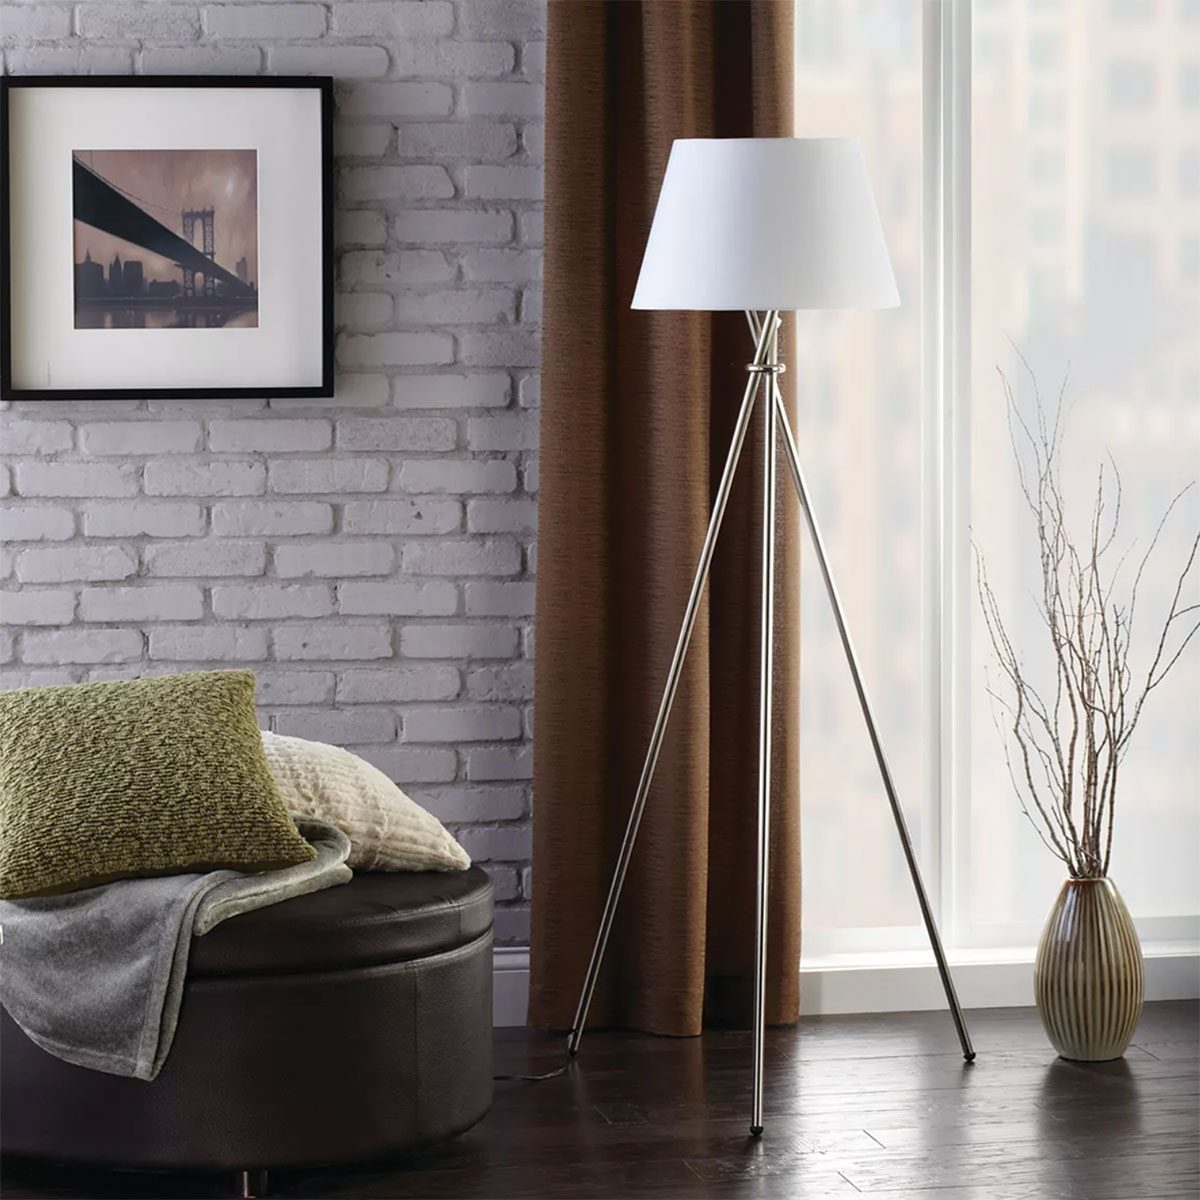 floor-lamp-decor-modern-design